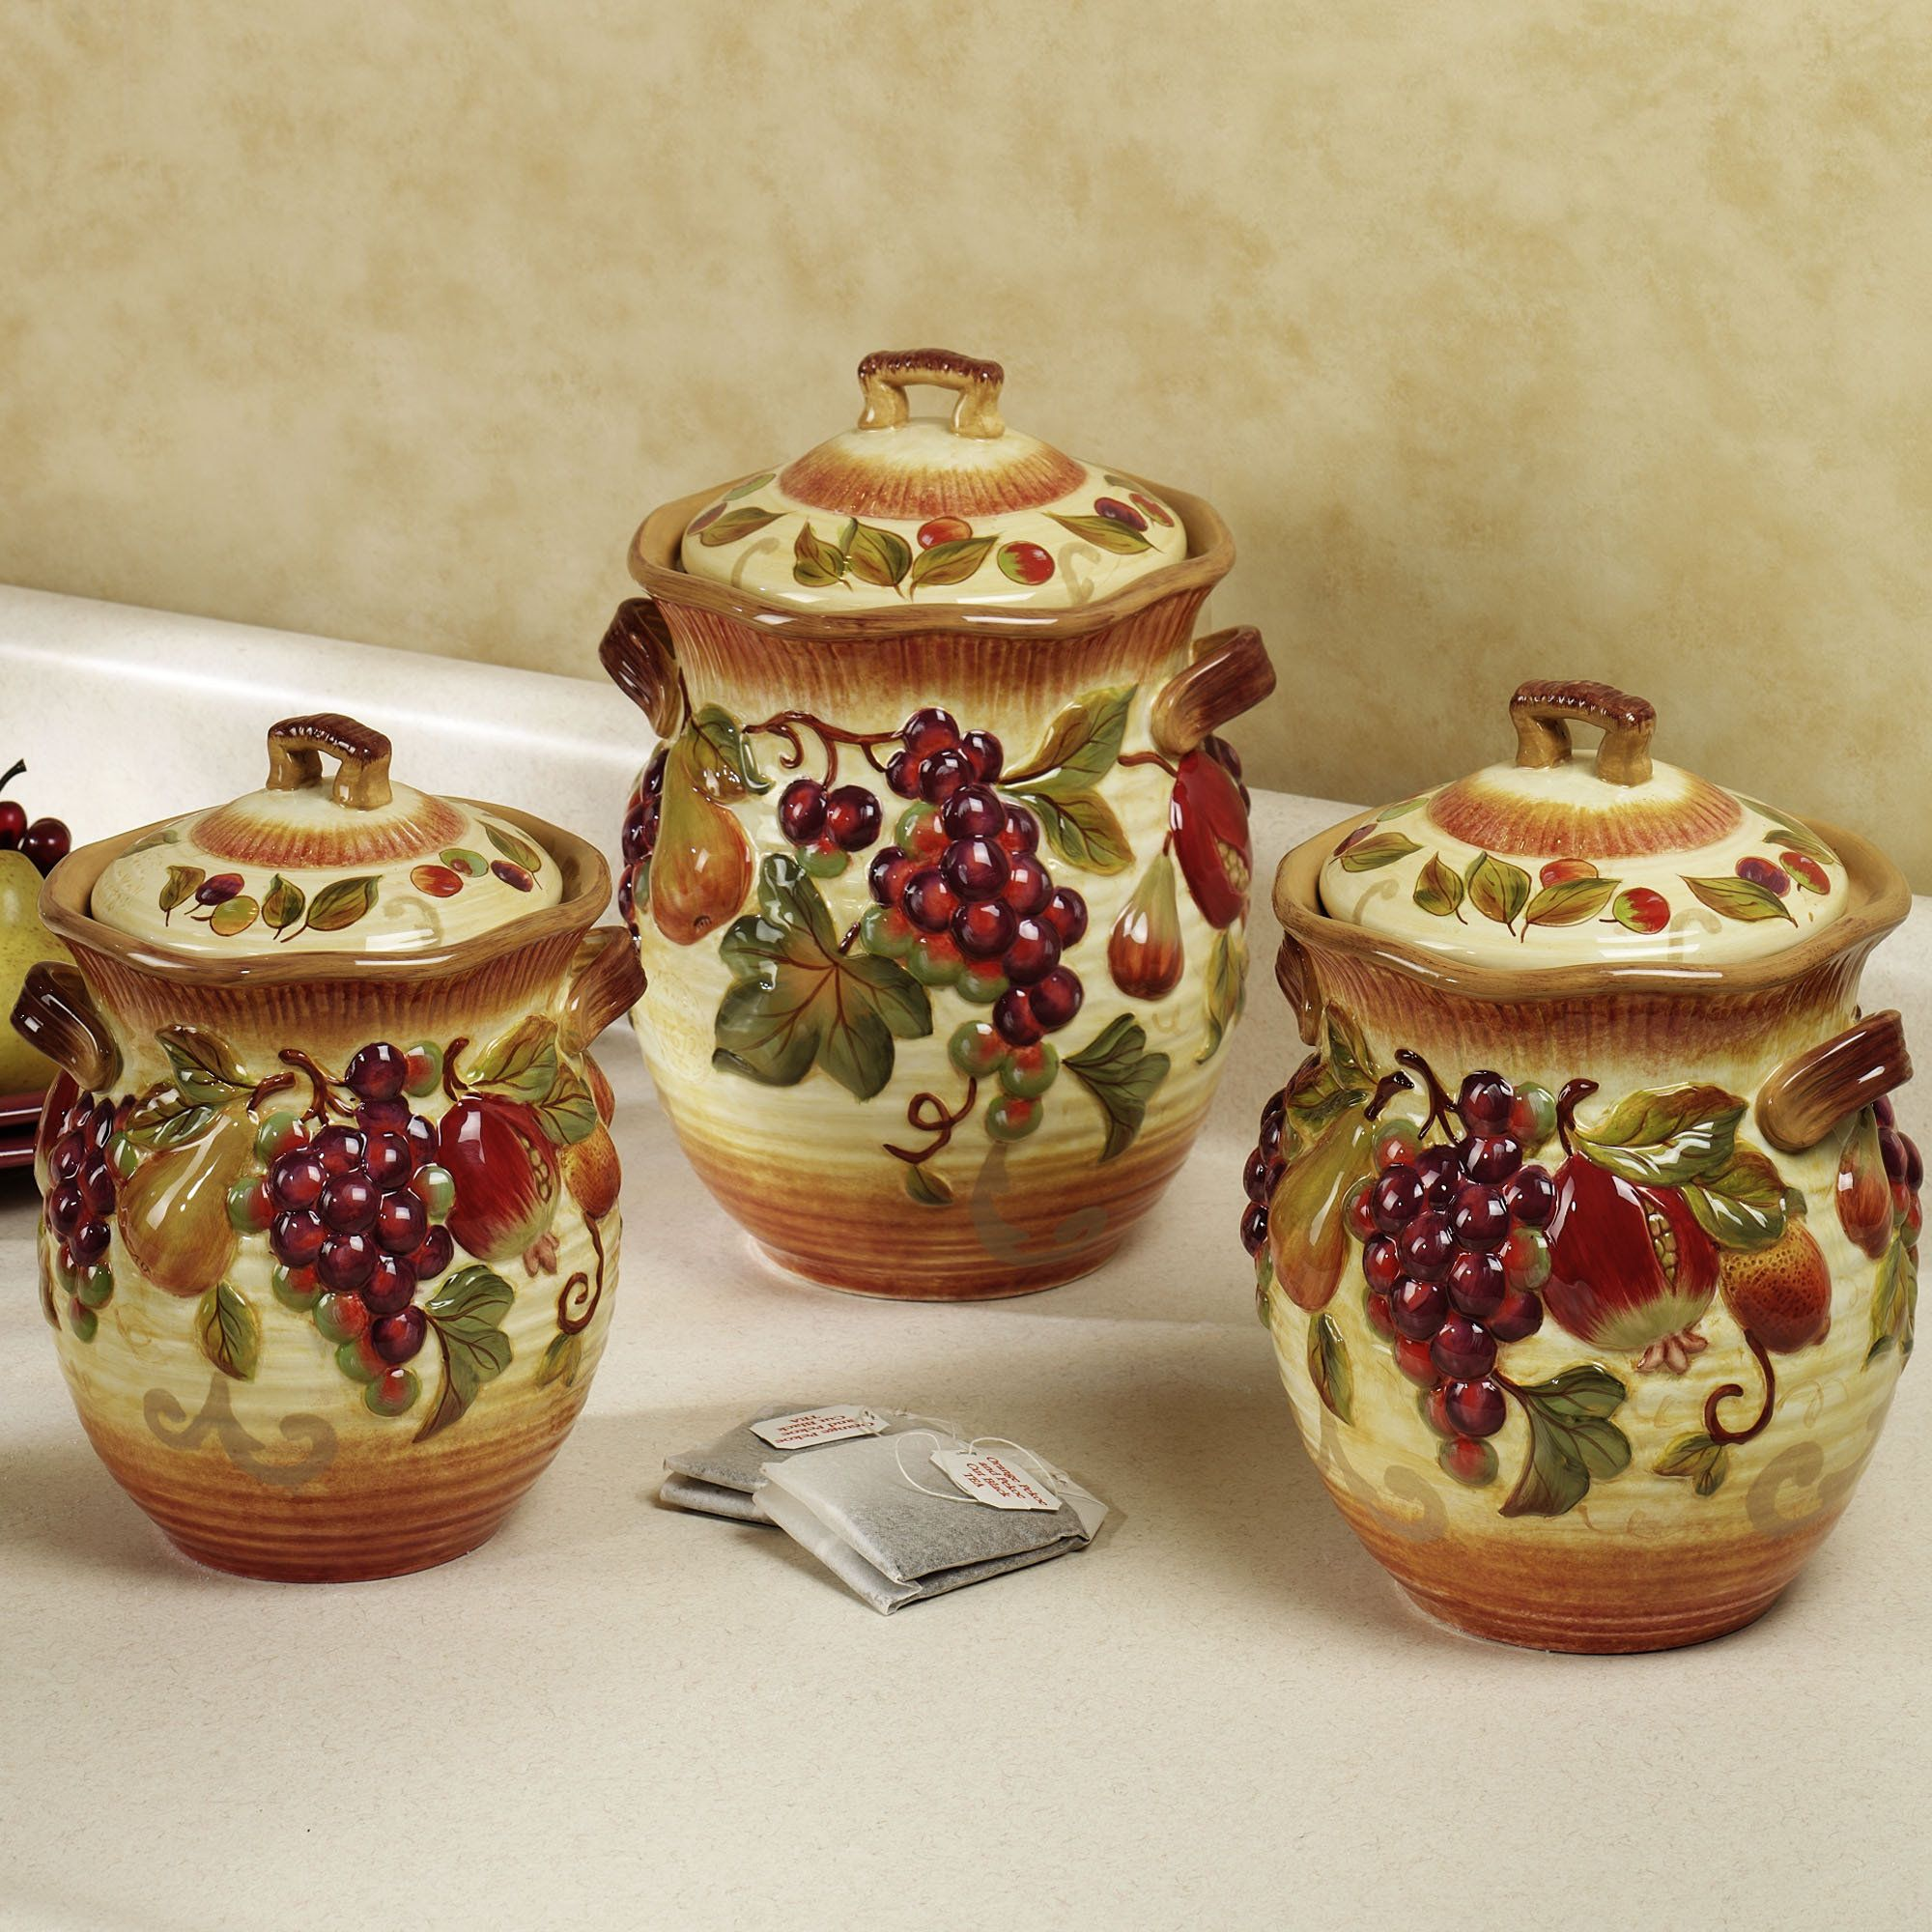 tuscan kitchen canisters tuscan style dish set kitchen canisters iron furniture 15237